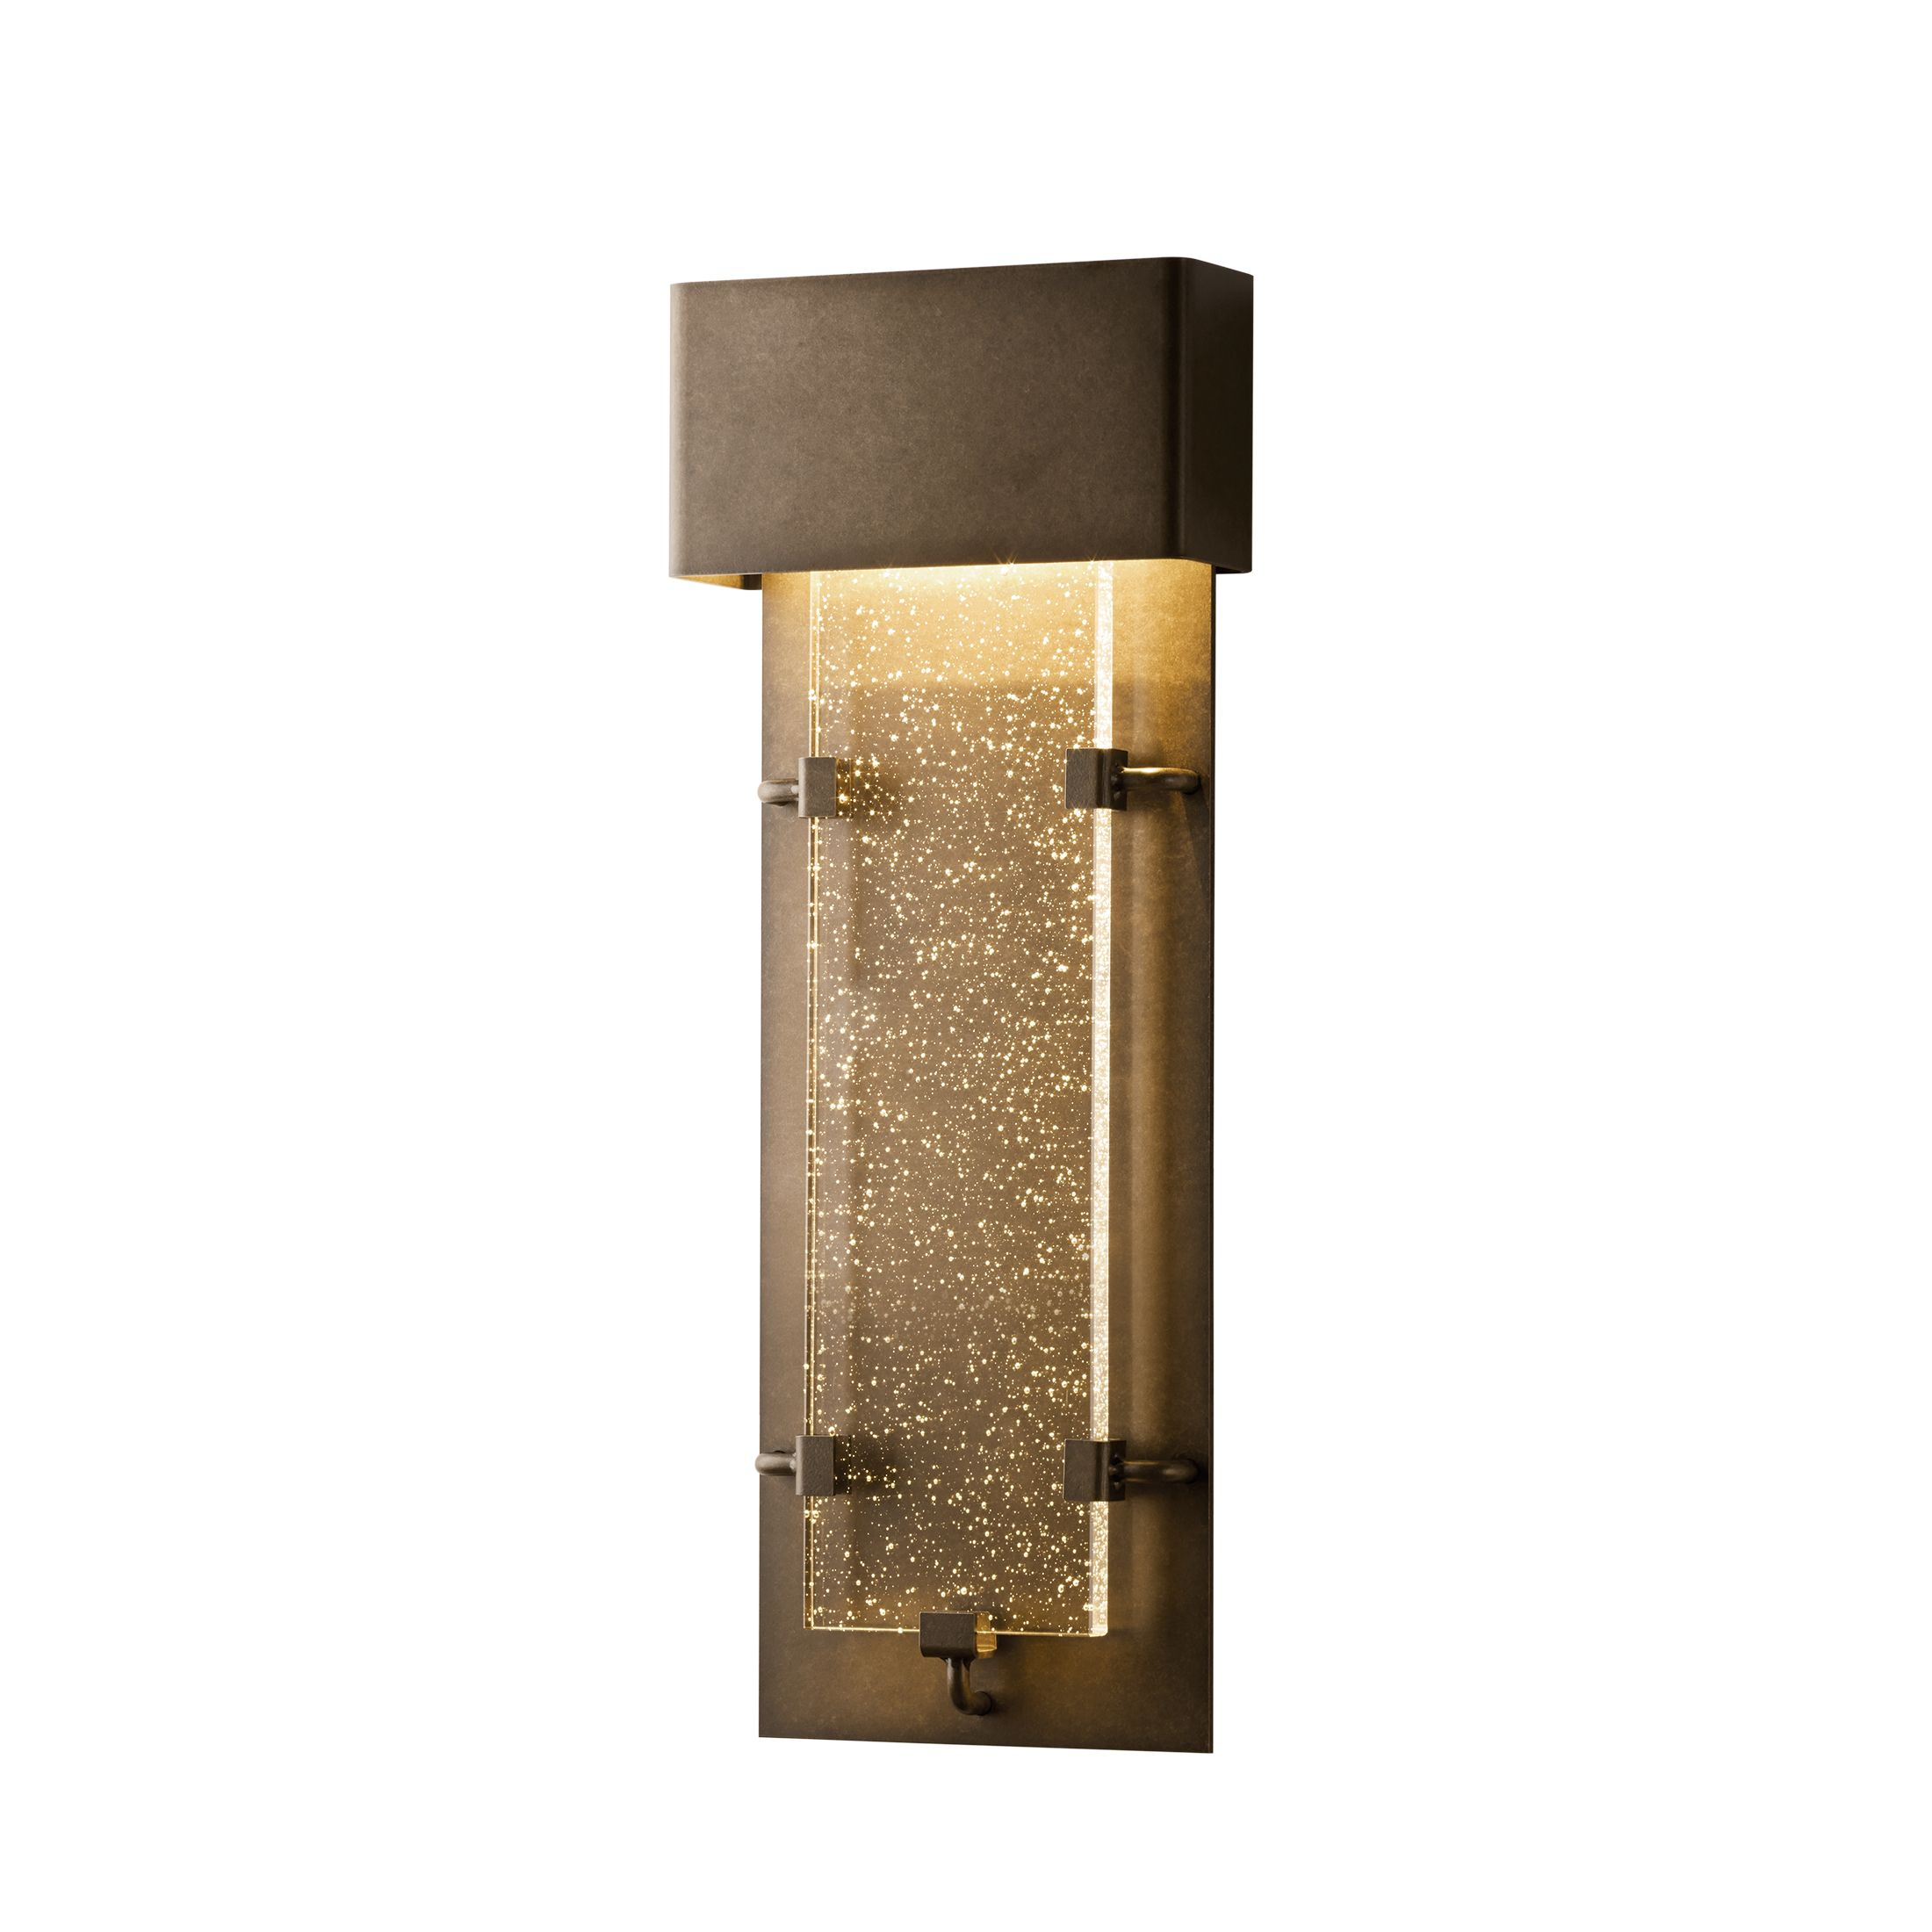 Thumbnail for Ursa Small LED Outdoor Sconce